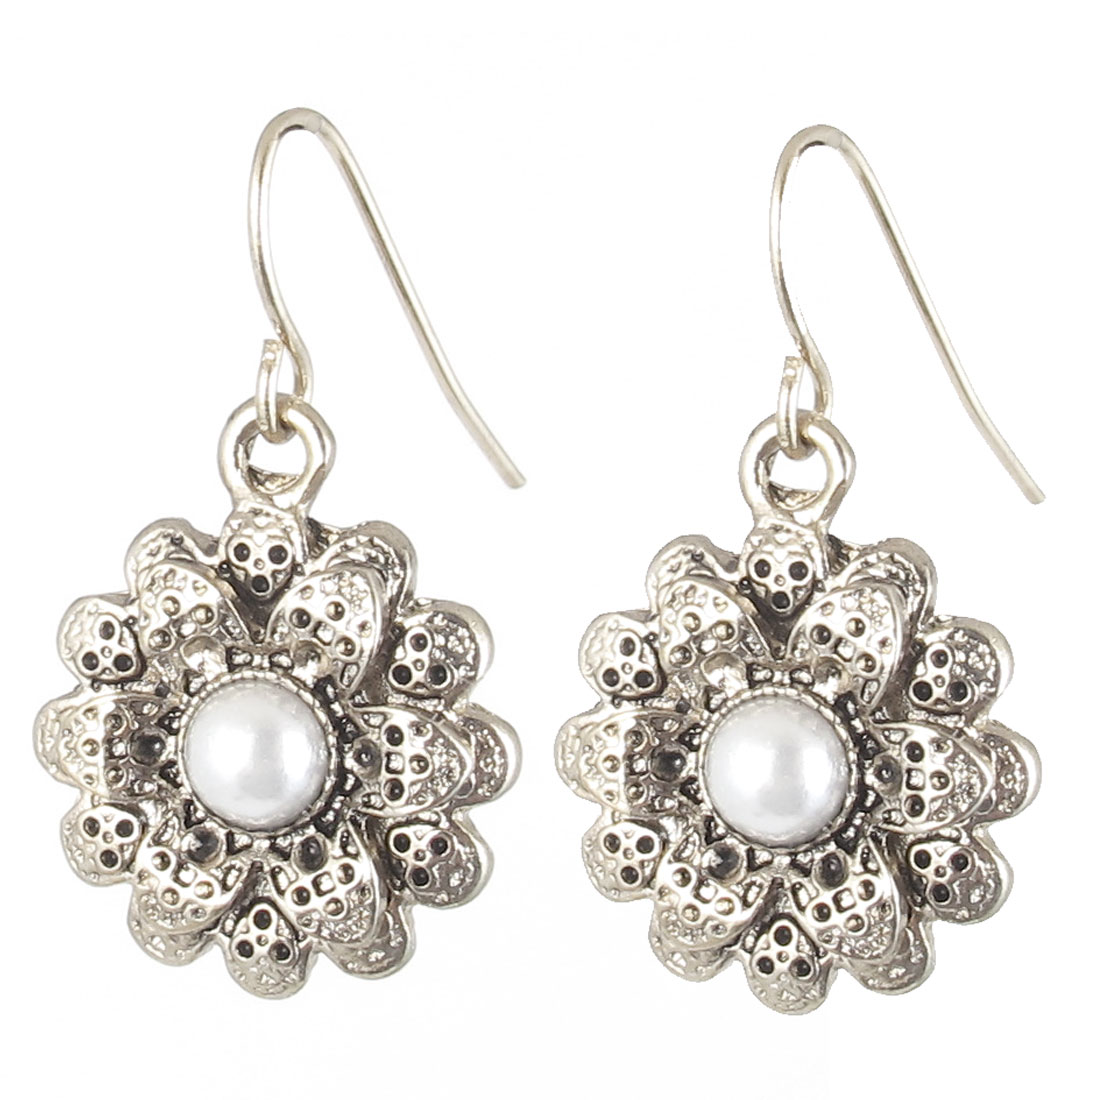 "1.5"" Length White Copper Tone Imitation Pearl Detail Flower Shape Pendant Metal Hook Earrings Earbobs Pair for Lady Women"